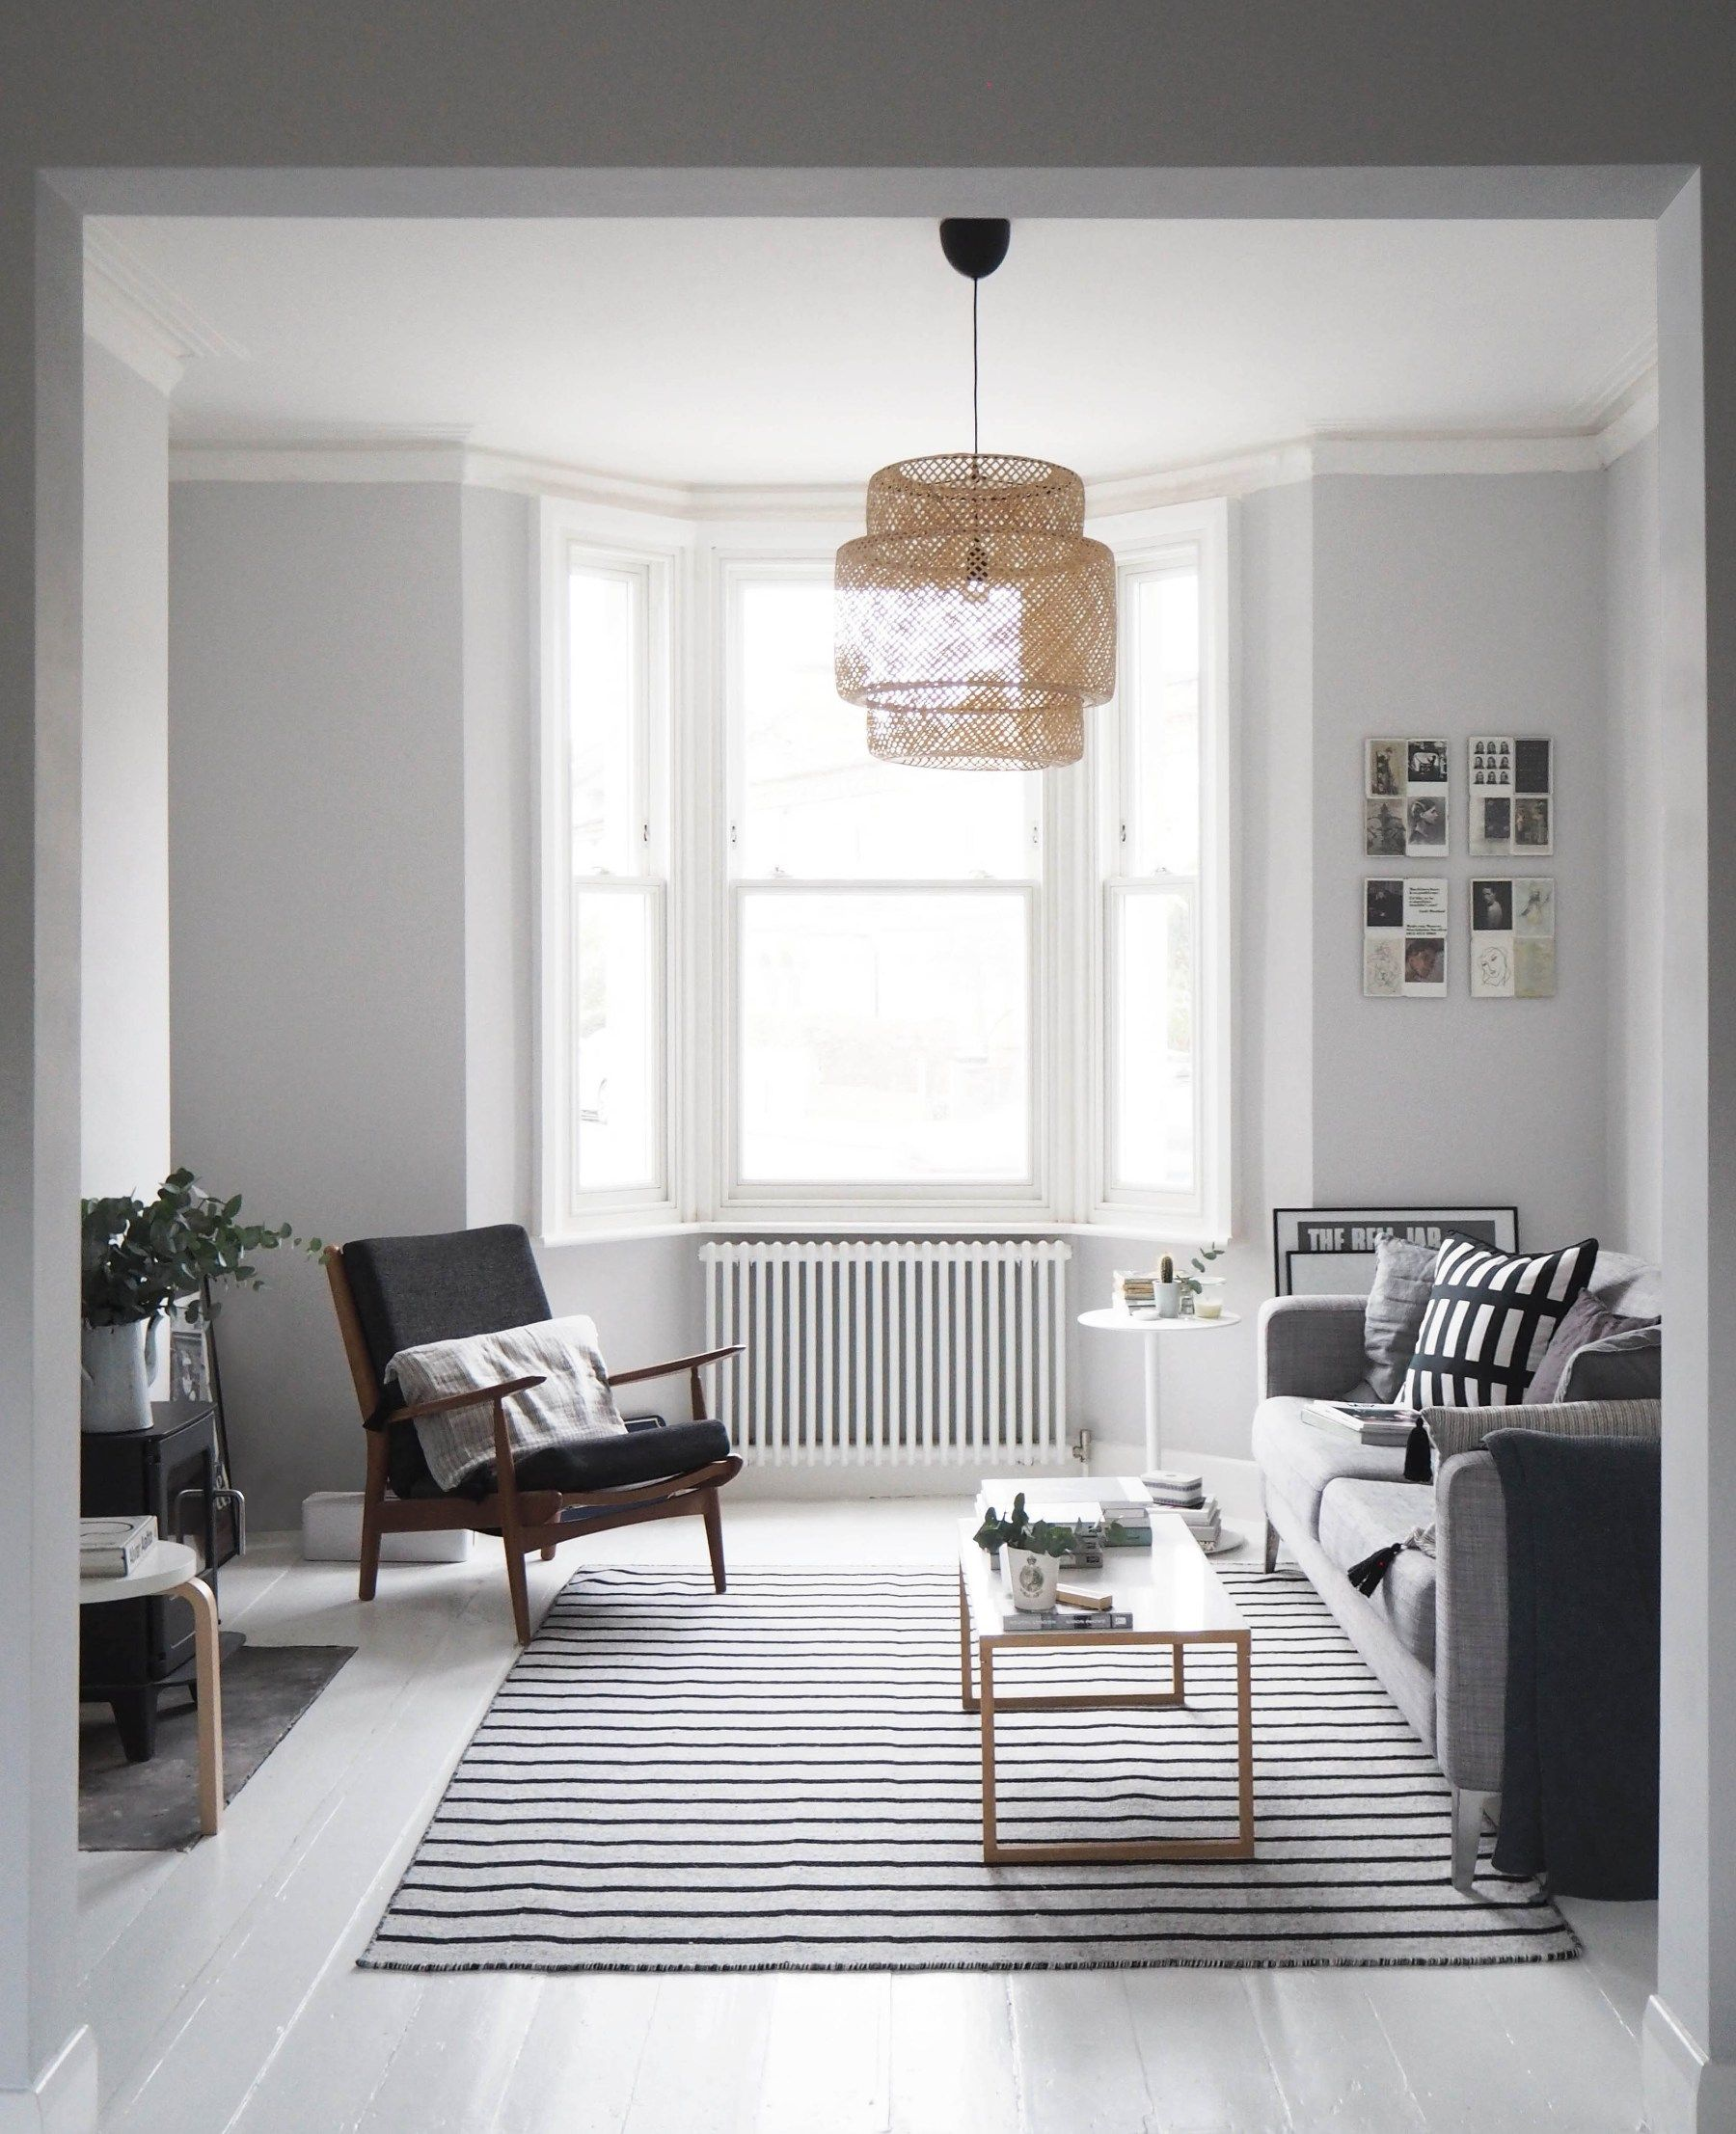 Contemporary Scandinavian Rugs From Woven Grey Walls Living Room